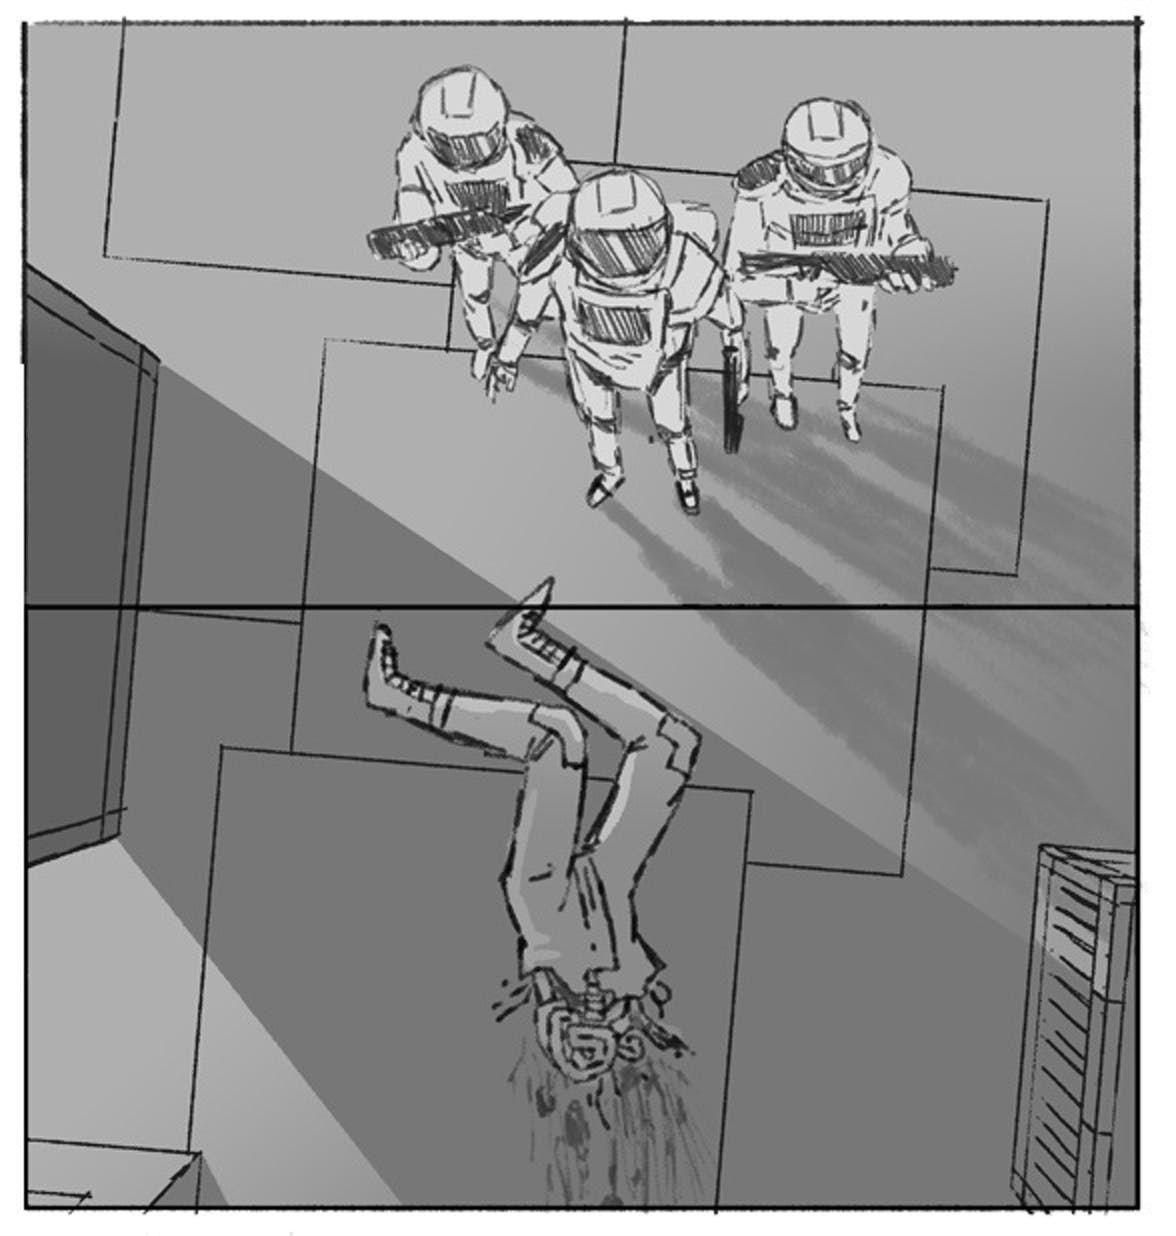 Storyboard art for the never-made script.